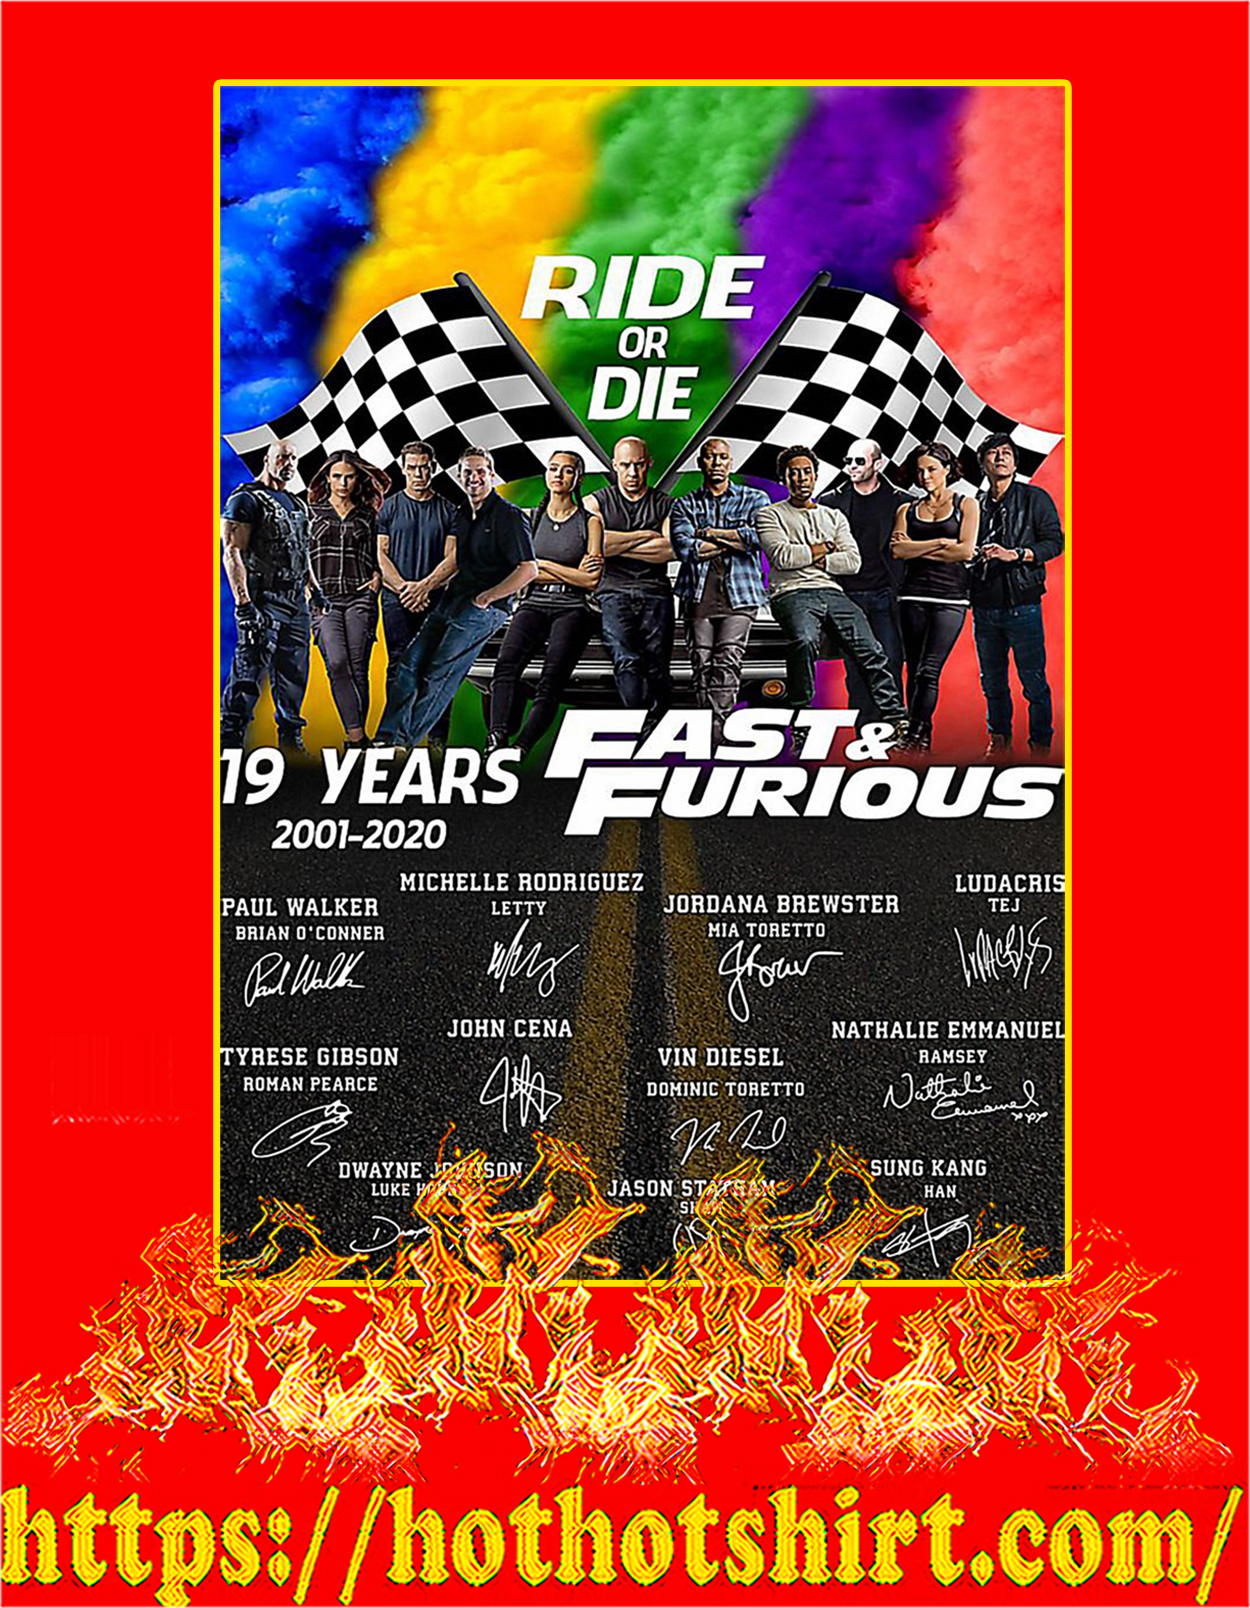 Ride or die 19 years of fast and furious poster - A2